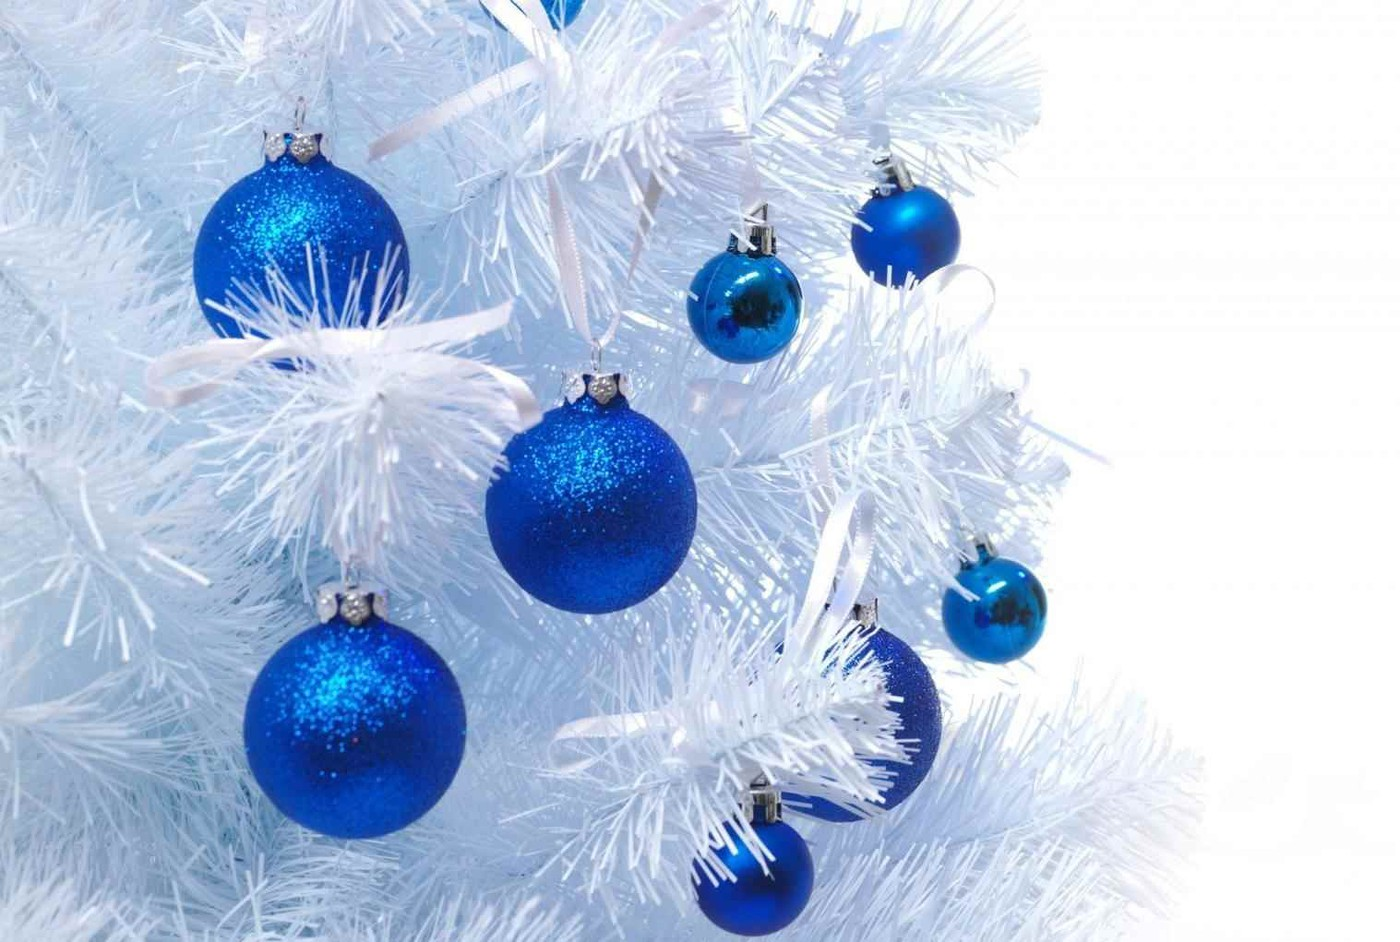 photo blue christmas tree soul thumping background template freevectors background blue christmas tree template freevectors walldevil walldevil blue christmas tree background image seasonal backgrounds album ami59 fotki com photo and video blue christmas tree soul thumping